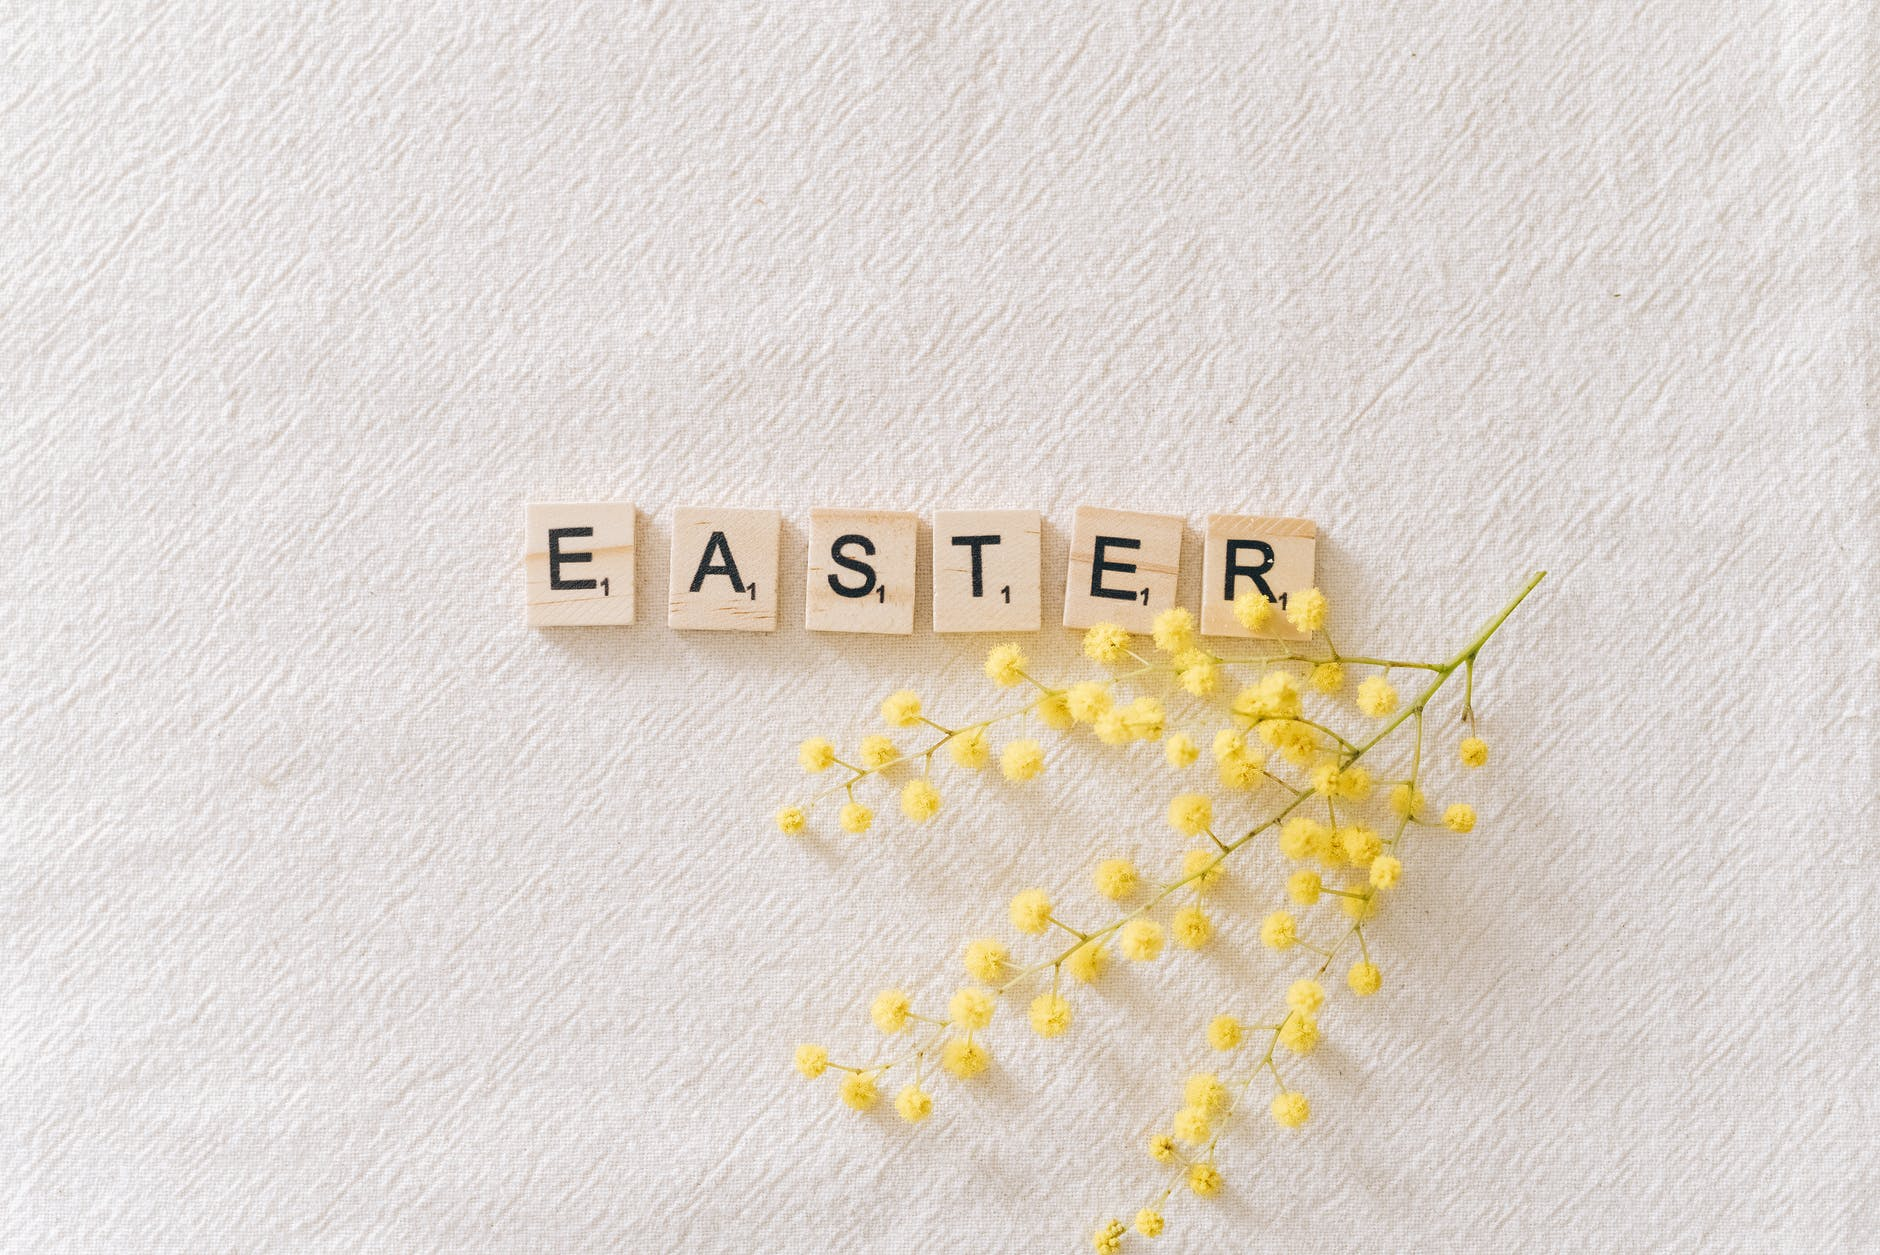 easter text on gray surface beside yellow flowers